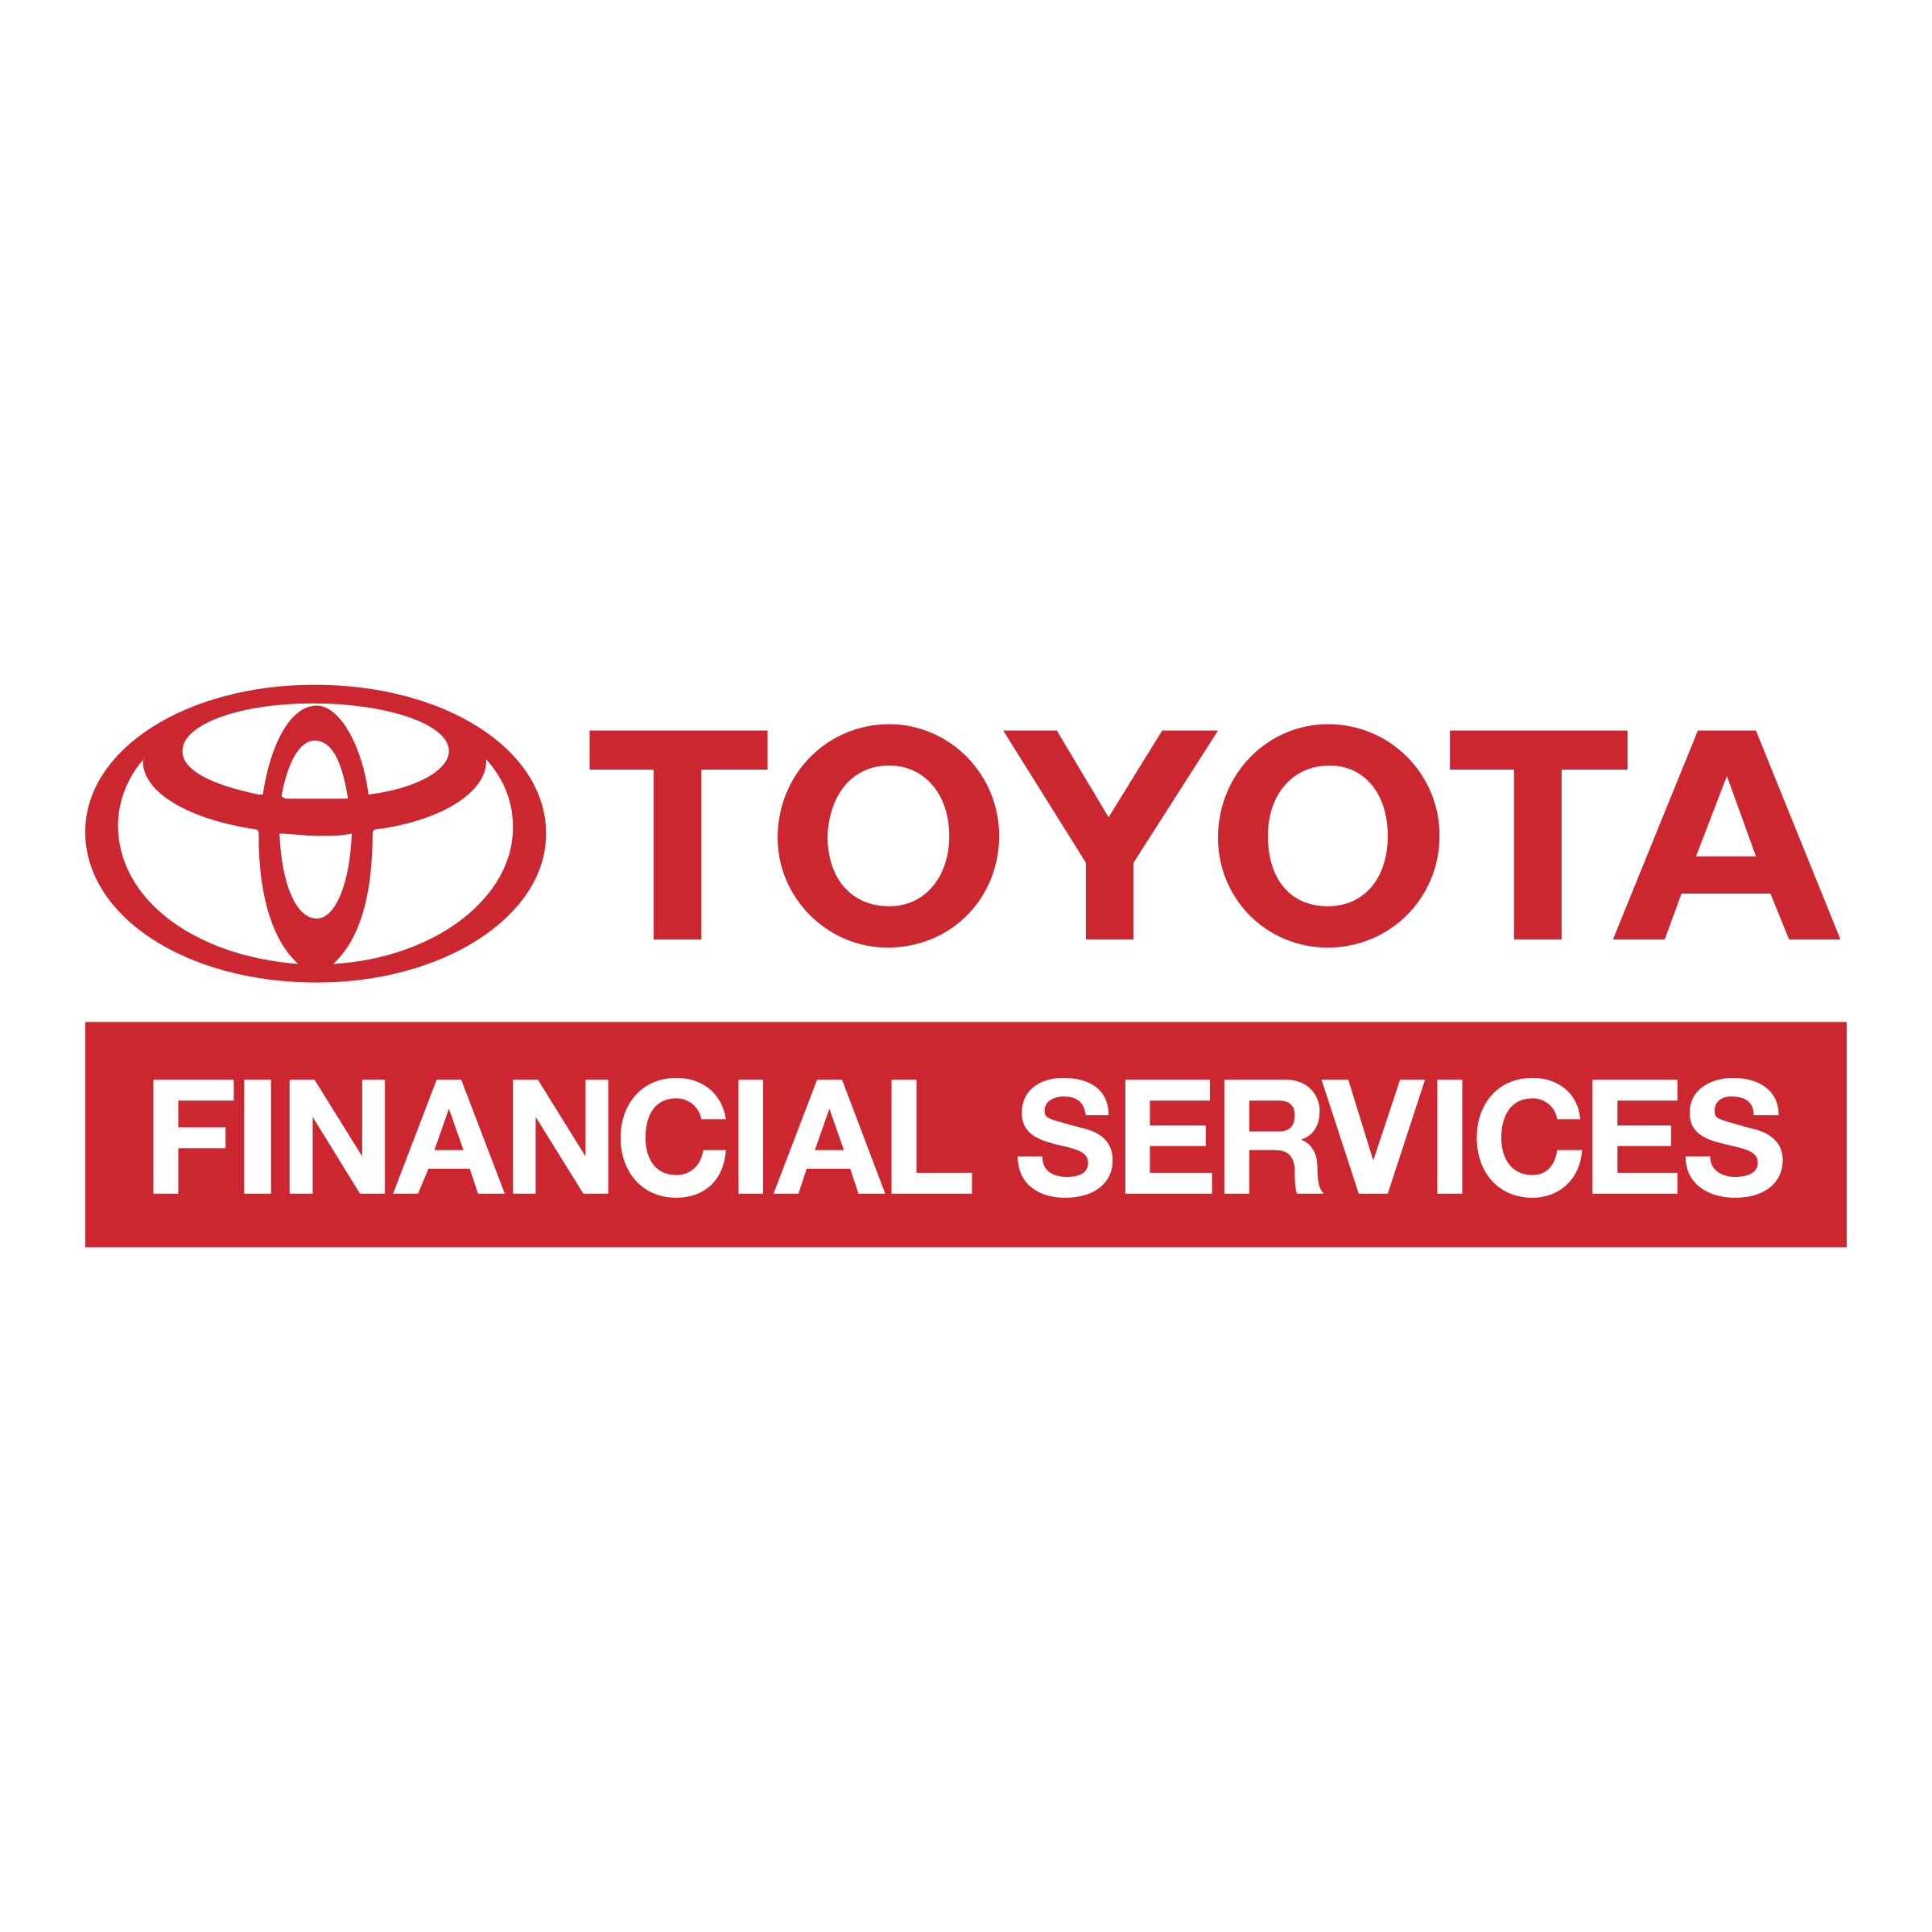 Vector financial png. Toyota services logo transparent